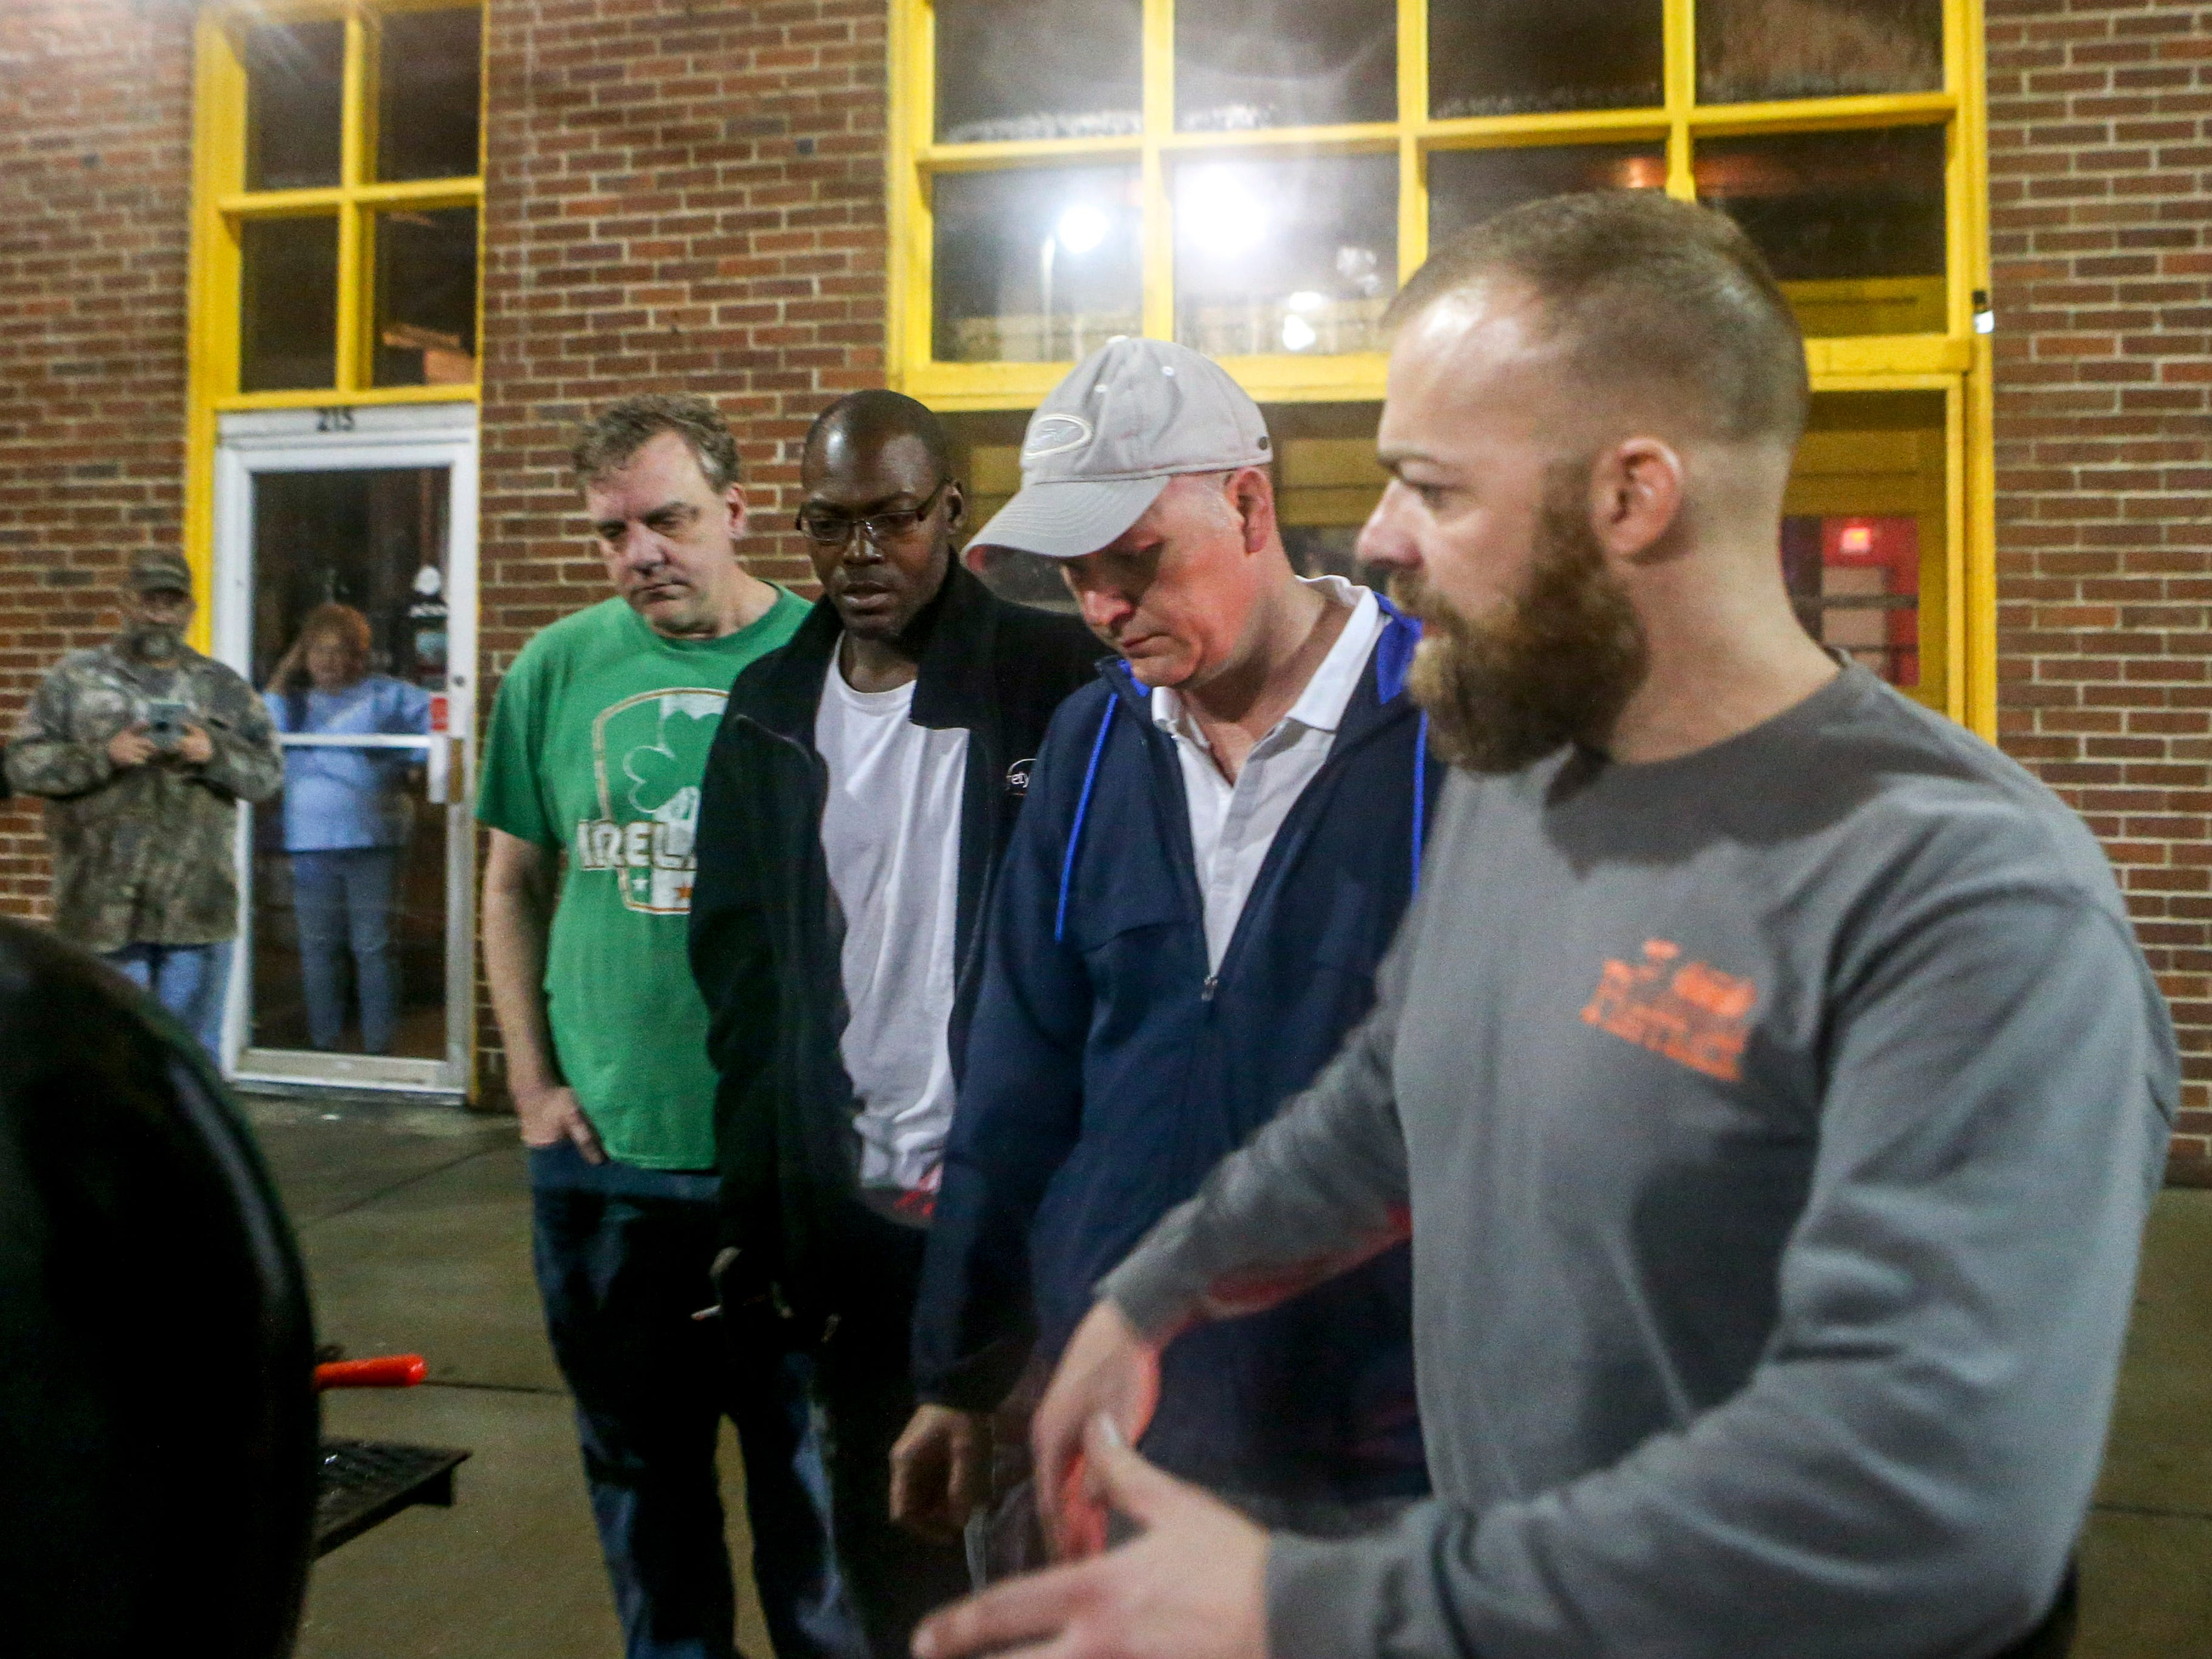 Thomas Conatser explains to Drew Baker, second right, and his team Jeffery Bond, pitmaster, second left, and Geoffrey Hale, kitchen manager, left, the new smoker for their restaurant at 215 W Main St in Jackson, Tenn., on Friday, Nov. 30, 2018.